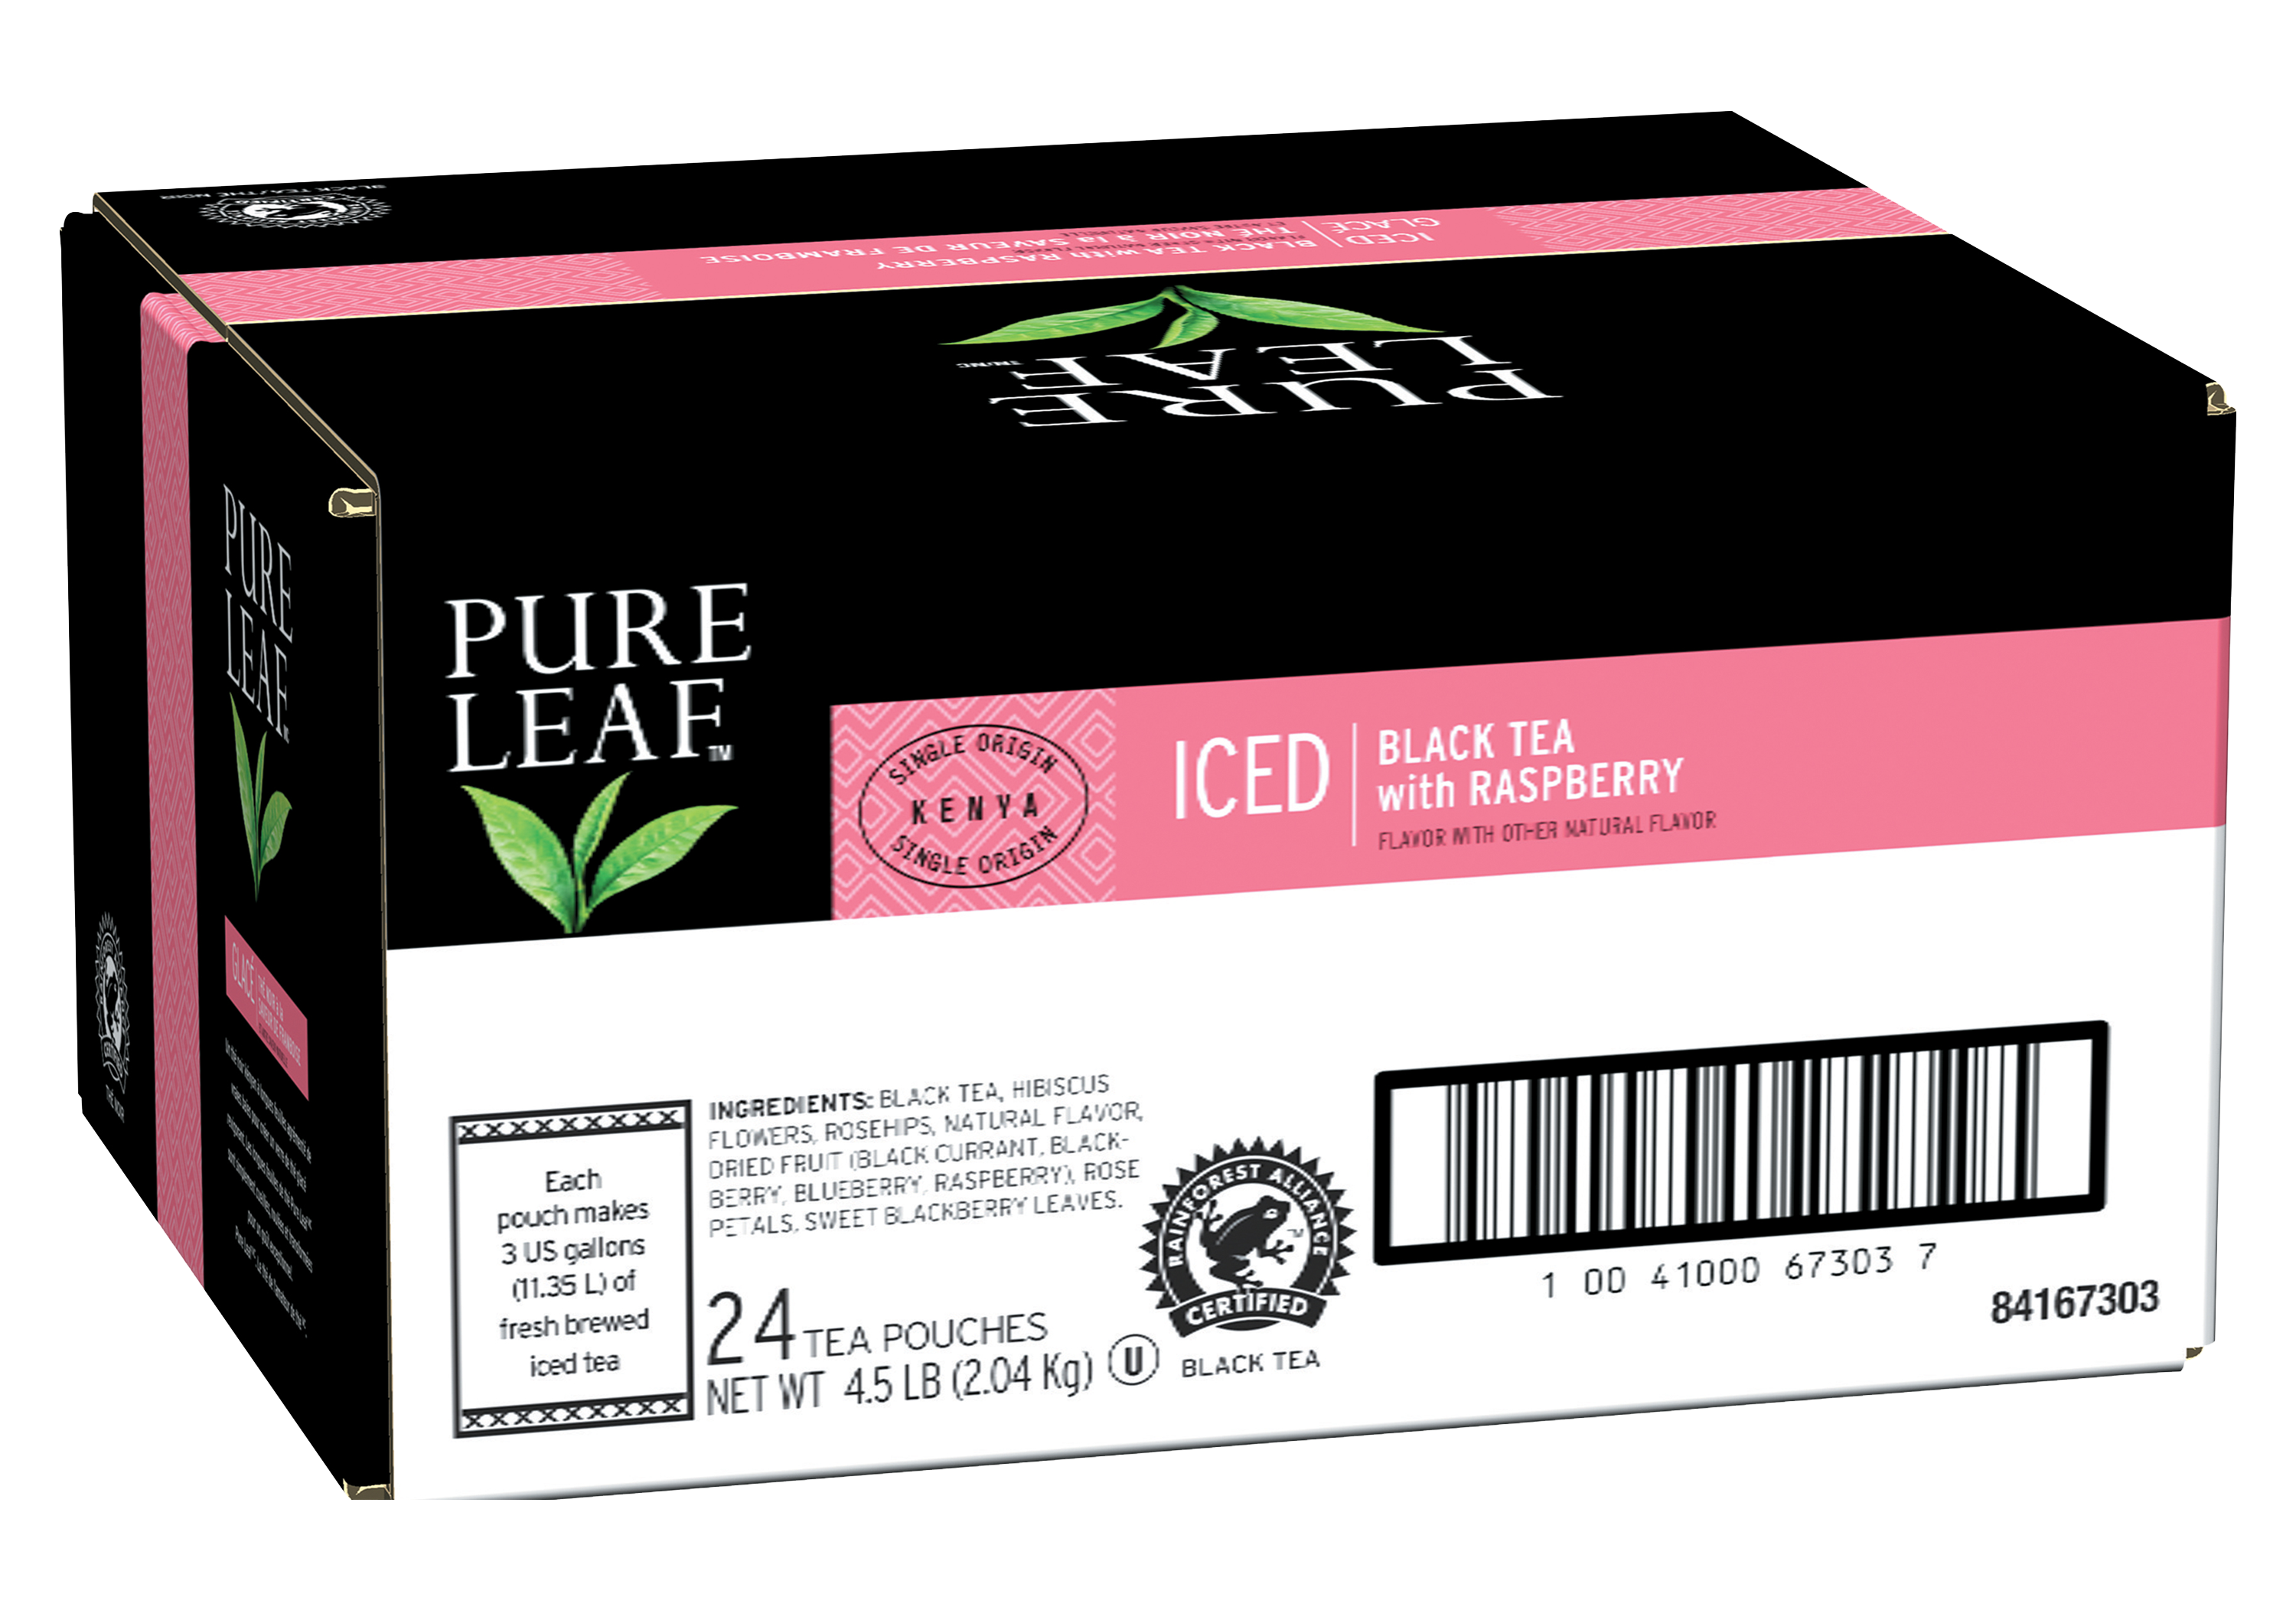 Pure Leafᵀᴹ/ᴹᶜ Iced Black Tea with Raspberry - 10041000672641